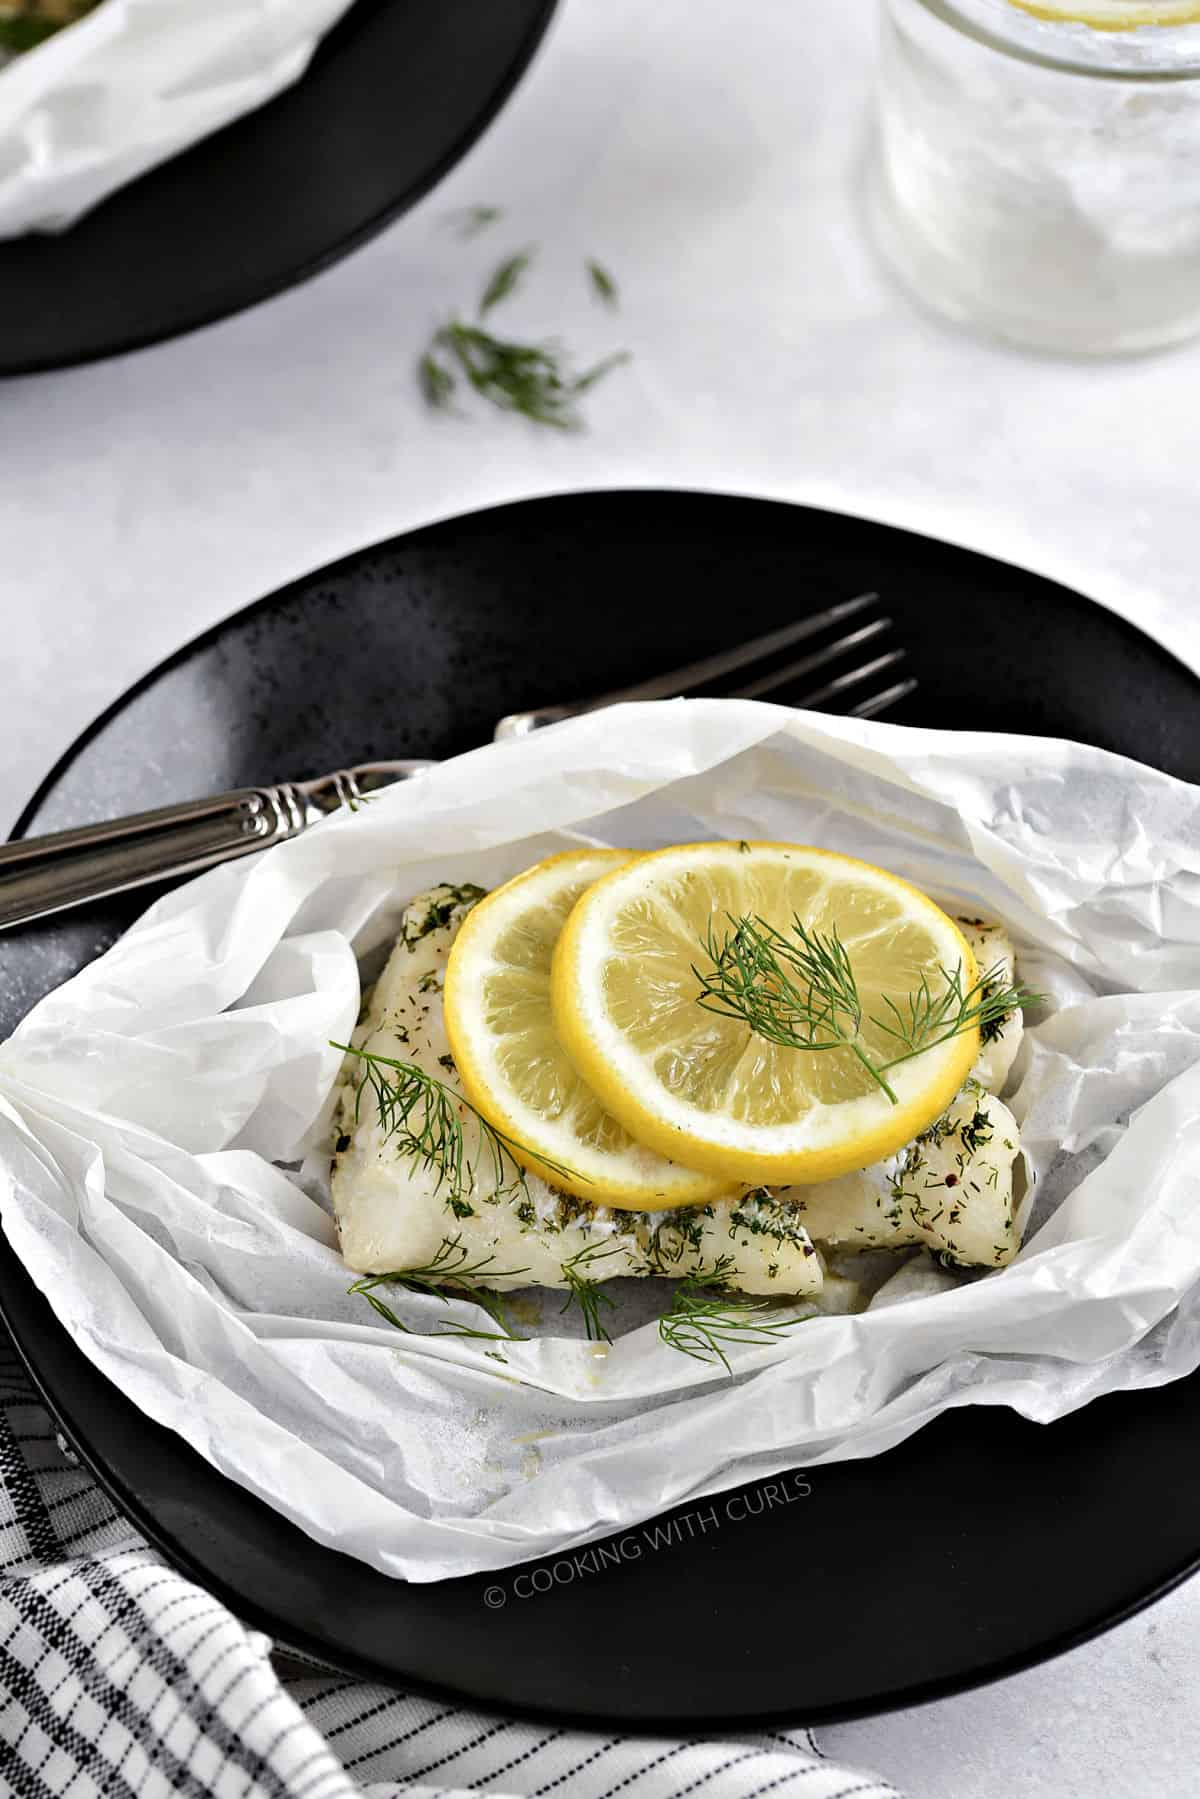 A cod filet topped with dill and a lemon slice in parchment paper sitting on a black plate.